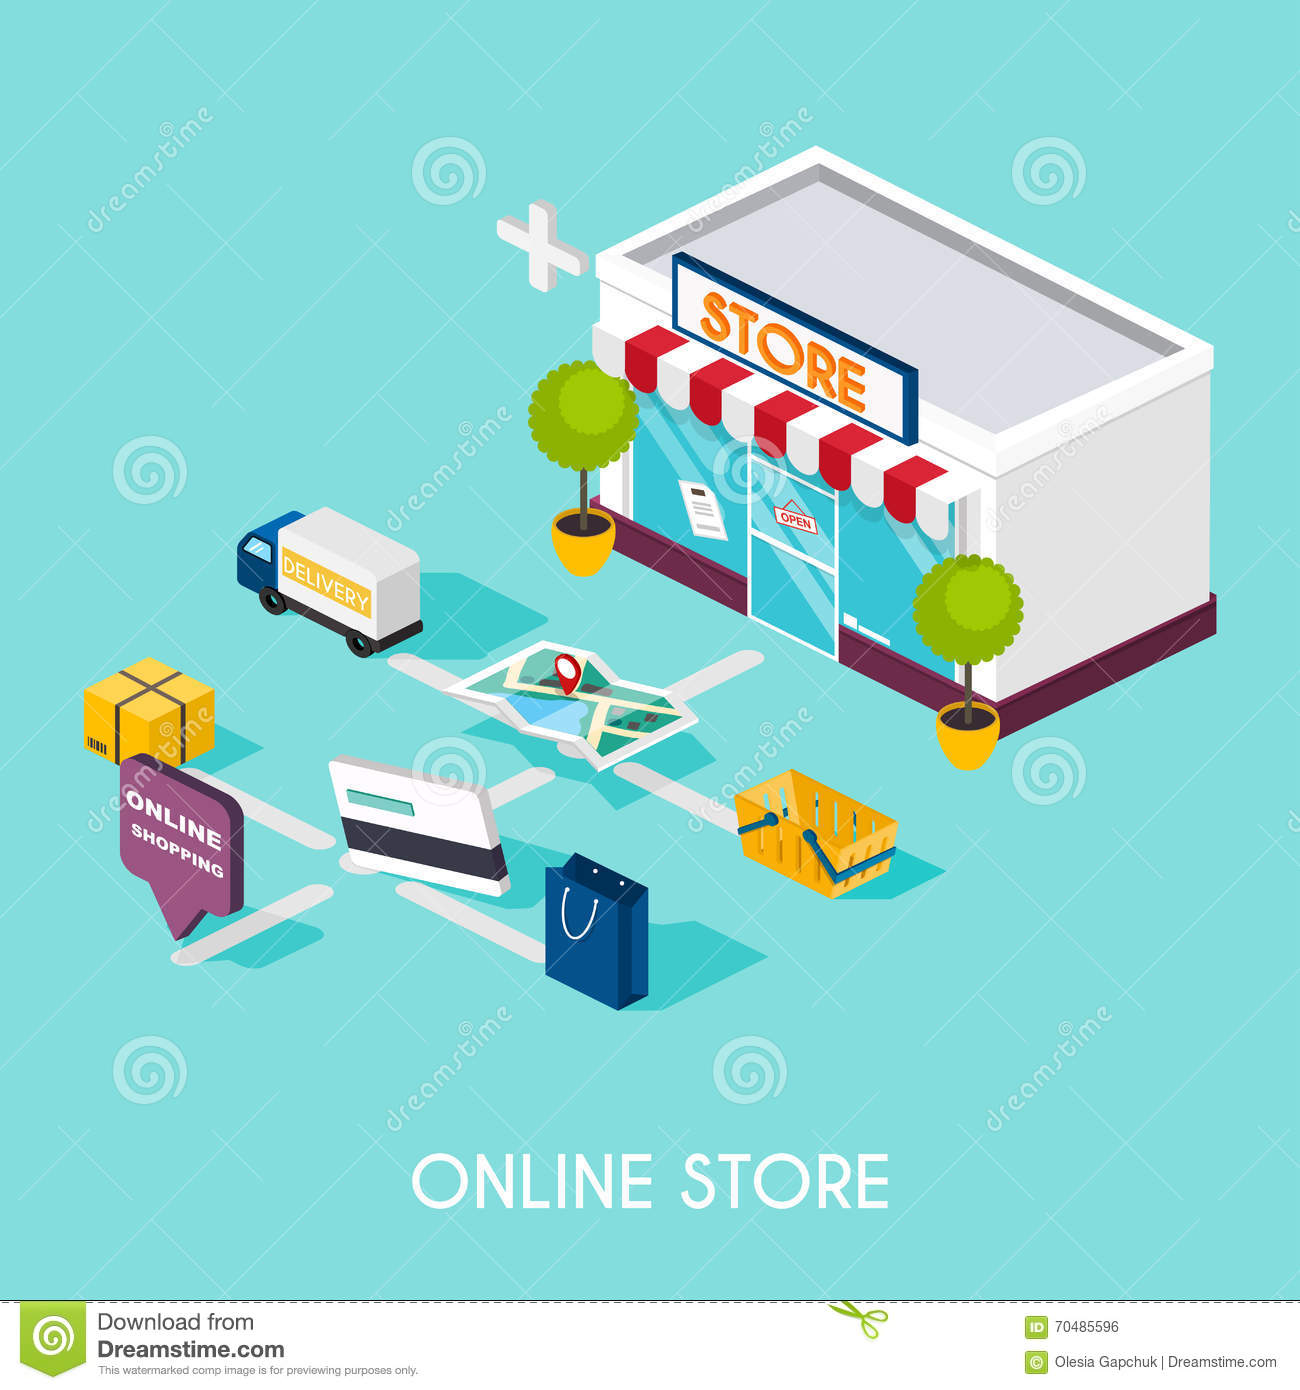 flat-d-web-isometric-online-shopping-e-commerce-electronic-business-payment-delivery-shipping-process-sales-70485596.jpg